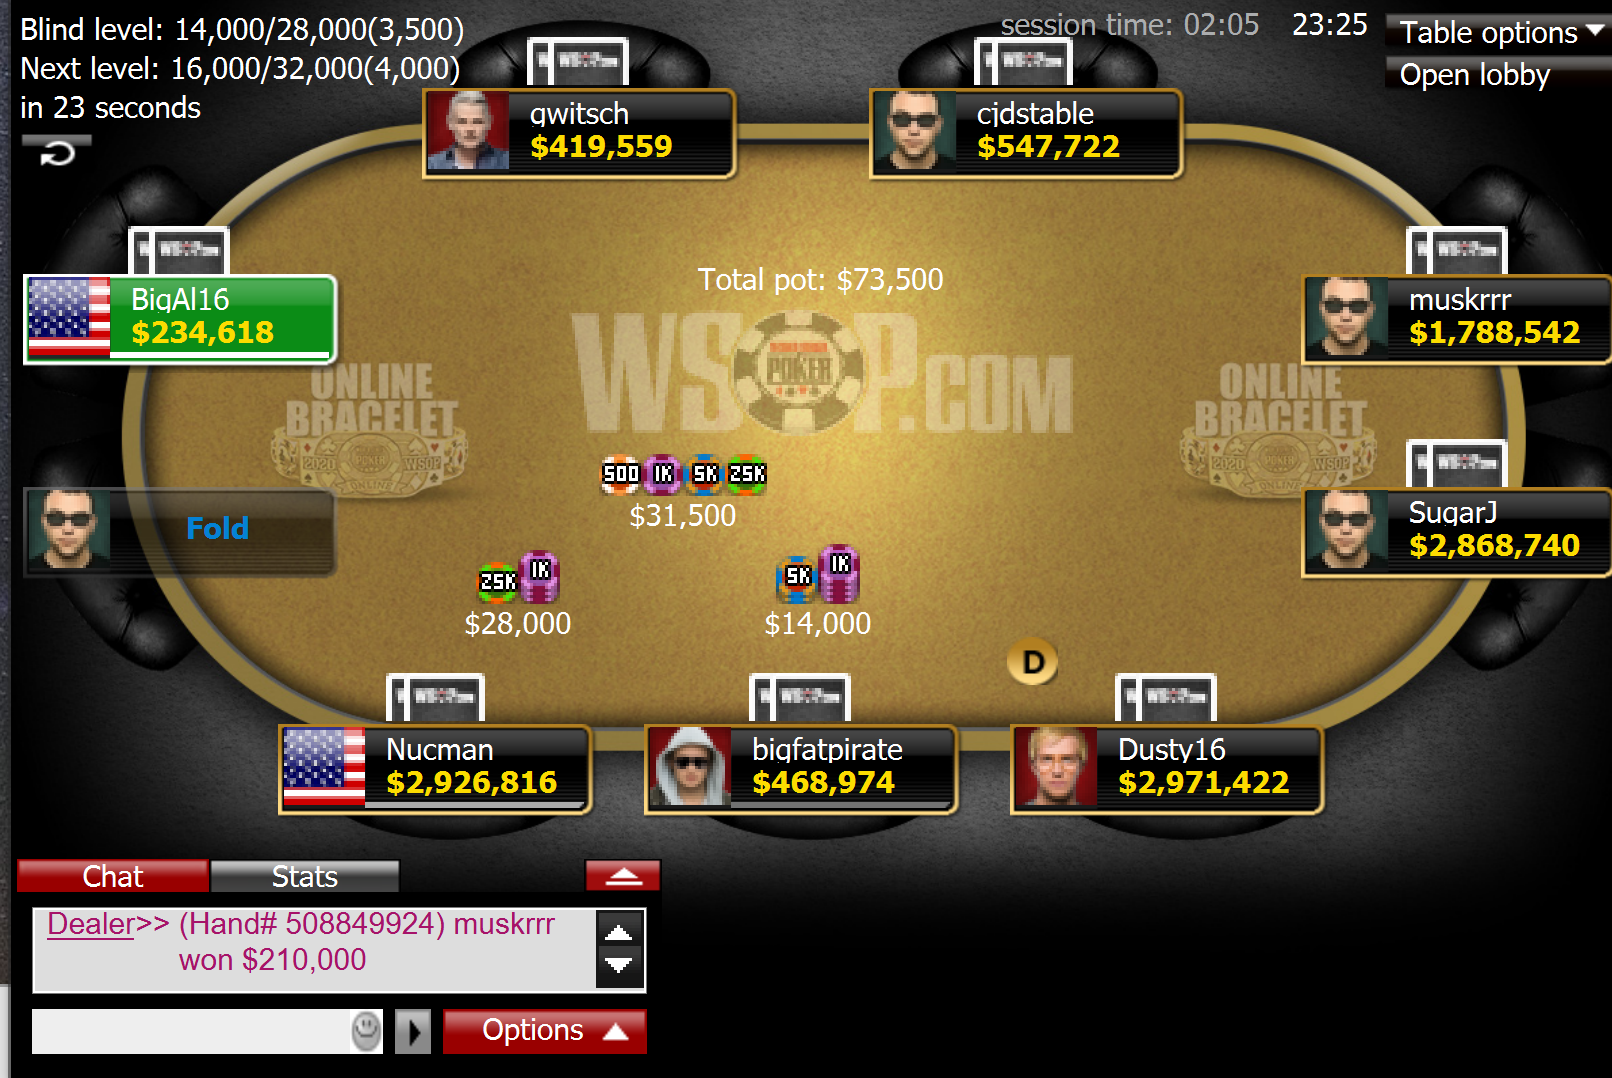 Event 30 Final Table